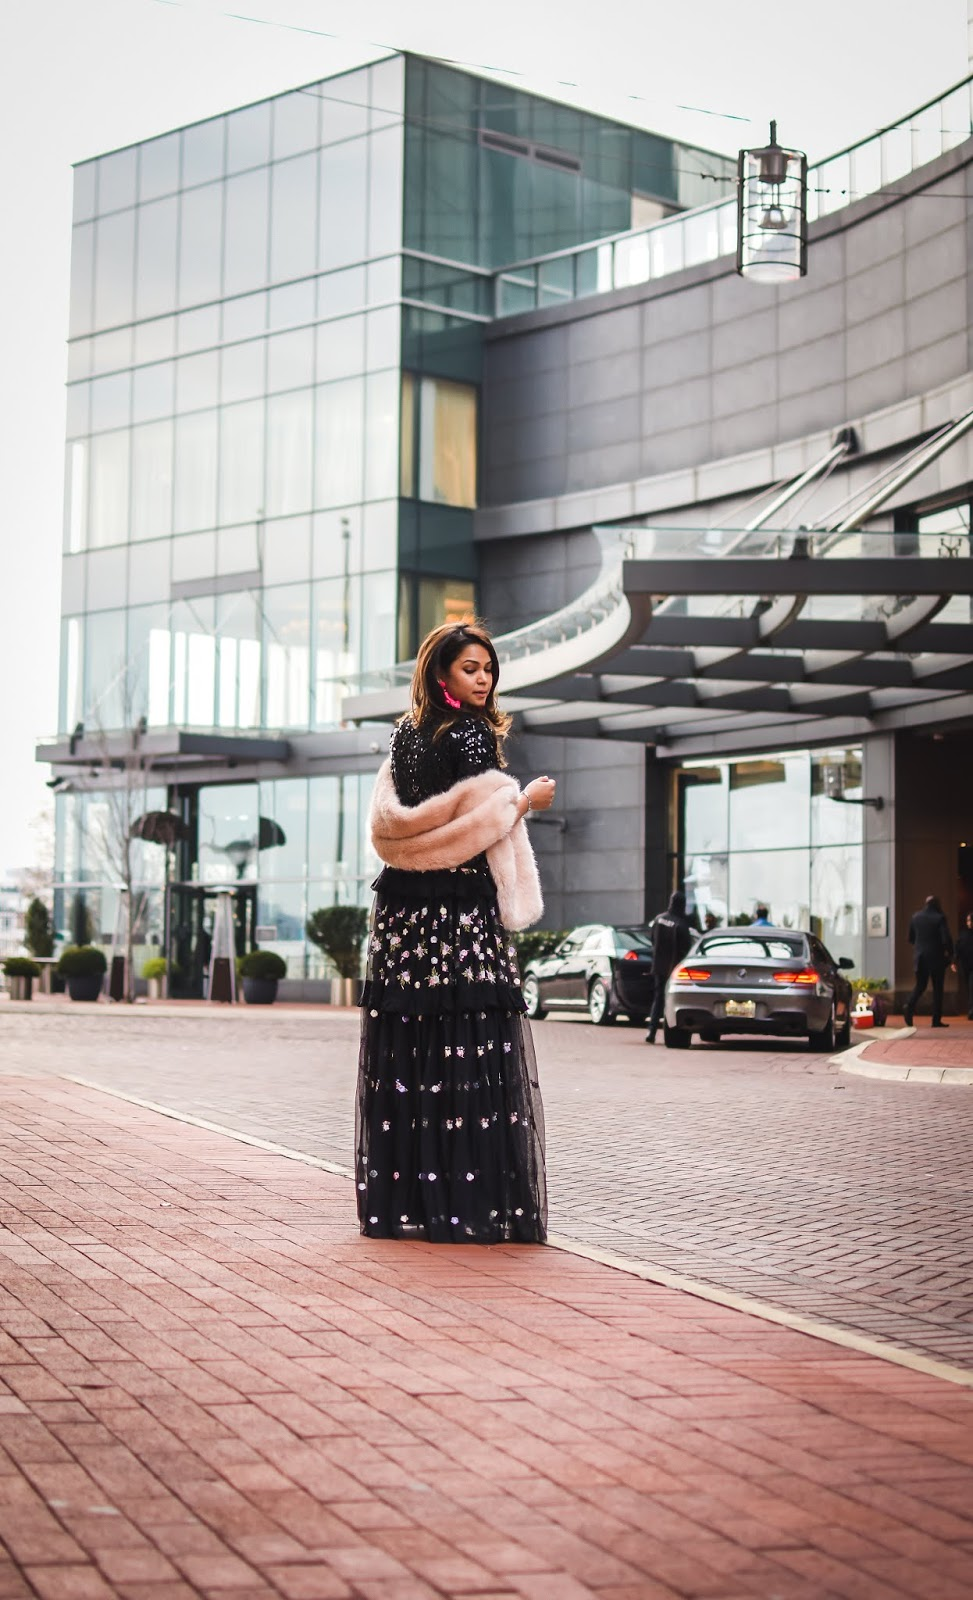 holiday outfits, black gown, needle and thread black floral gown, street, fashion blogger, saumya shiohare, Myriad musings, fur stole outfit